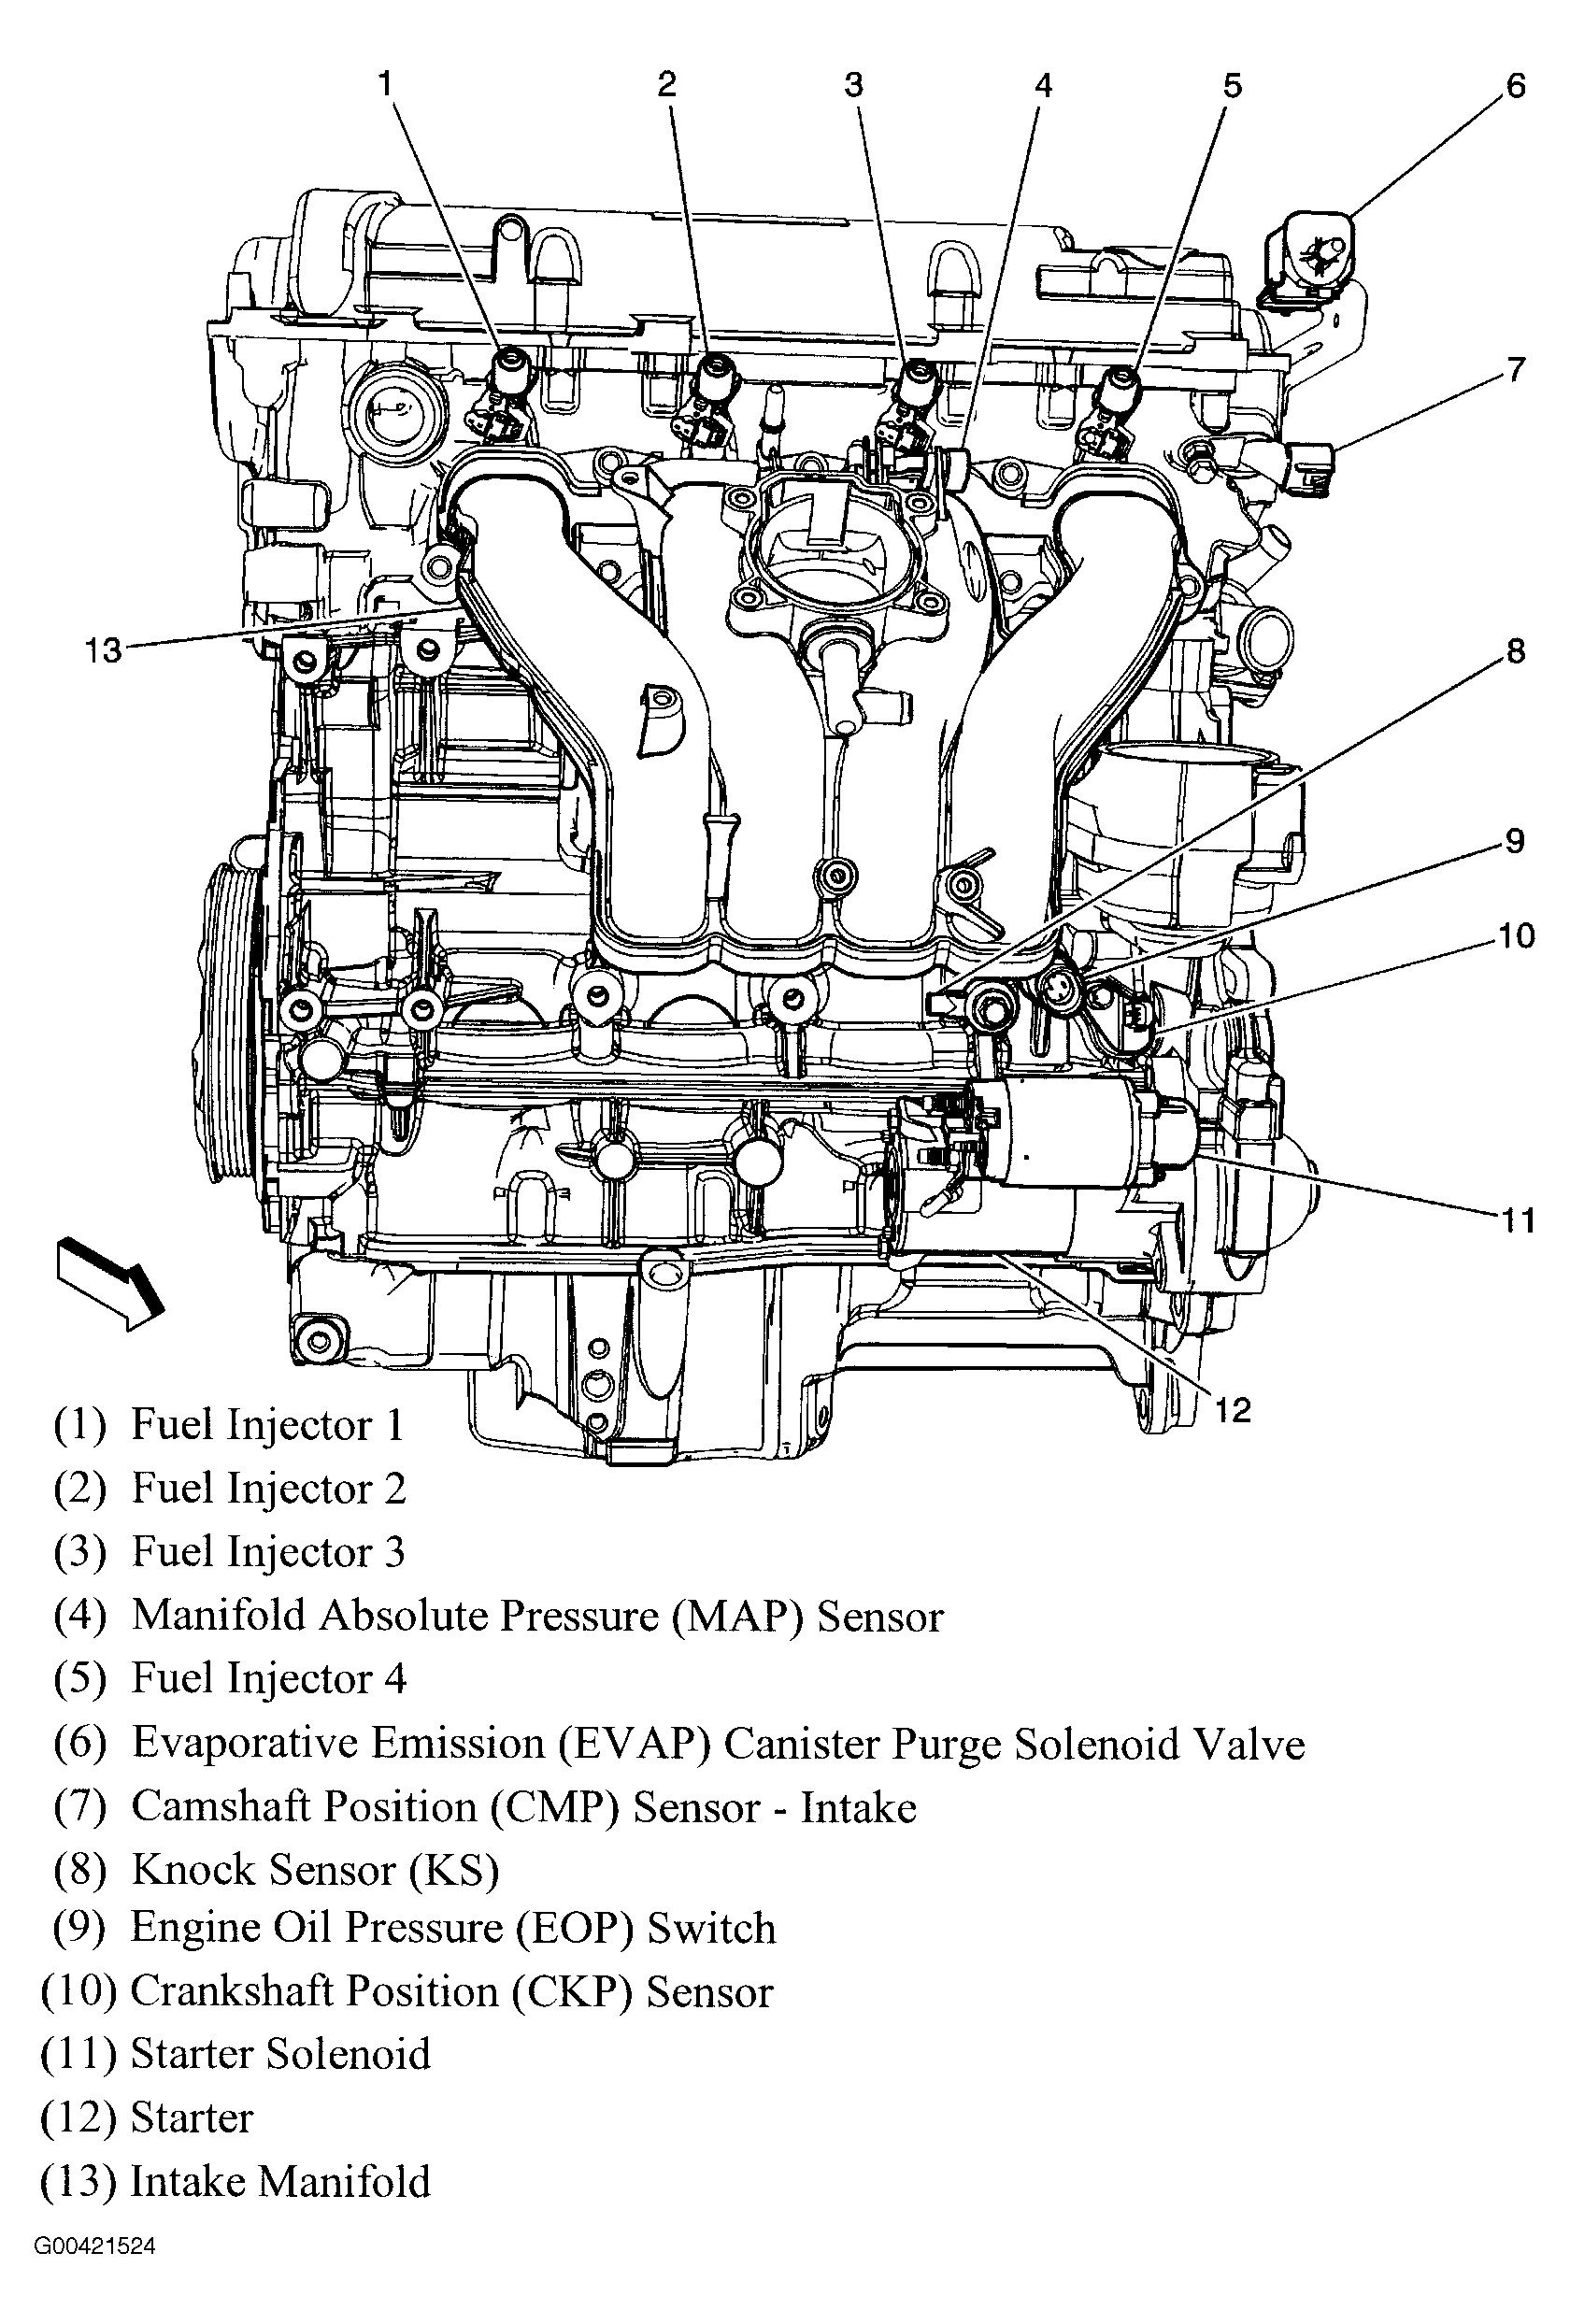 Chevy Hhr Engine Diagram - Wire Management & Wiring Diagram on